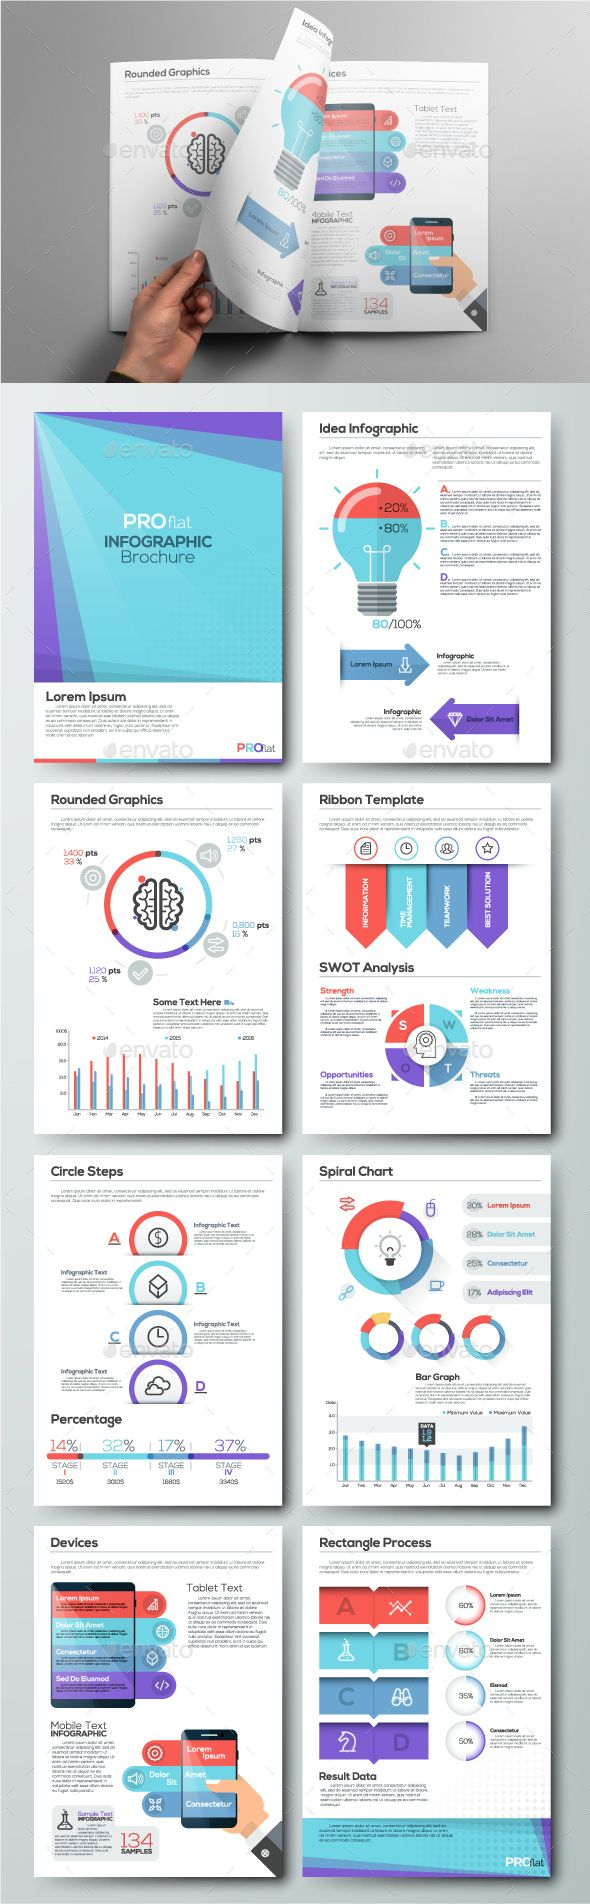 Pro Flat Infographic Brochure Template PSD, Vector EPS, AI Illustrator. Download here: http://graphicriver.net/item/pro-flat-infographic-brochure-set-4/16413838?ref=ksioks